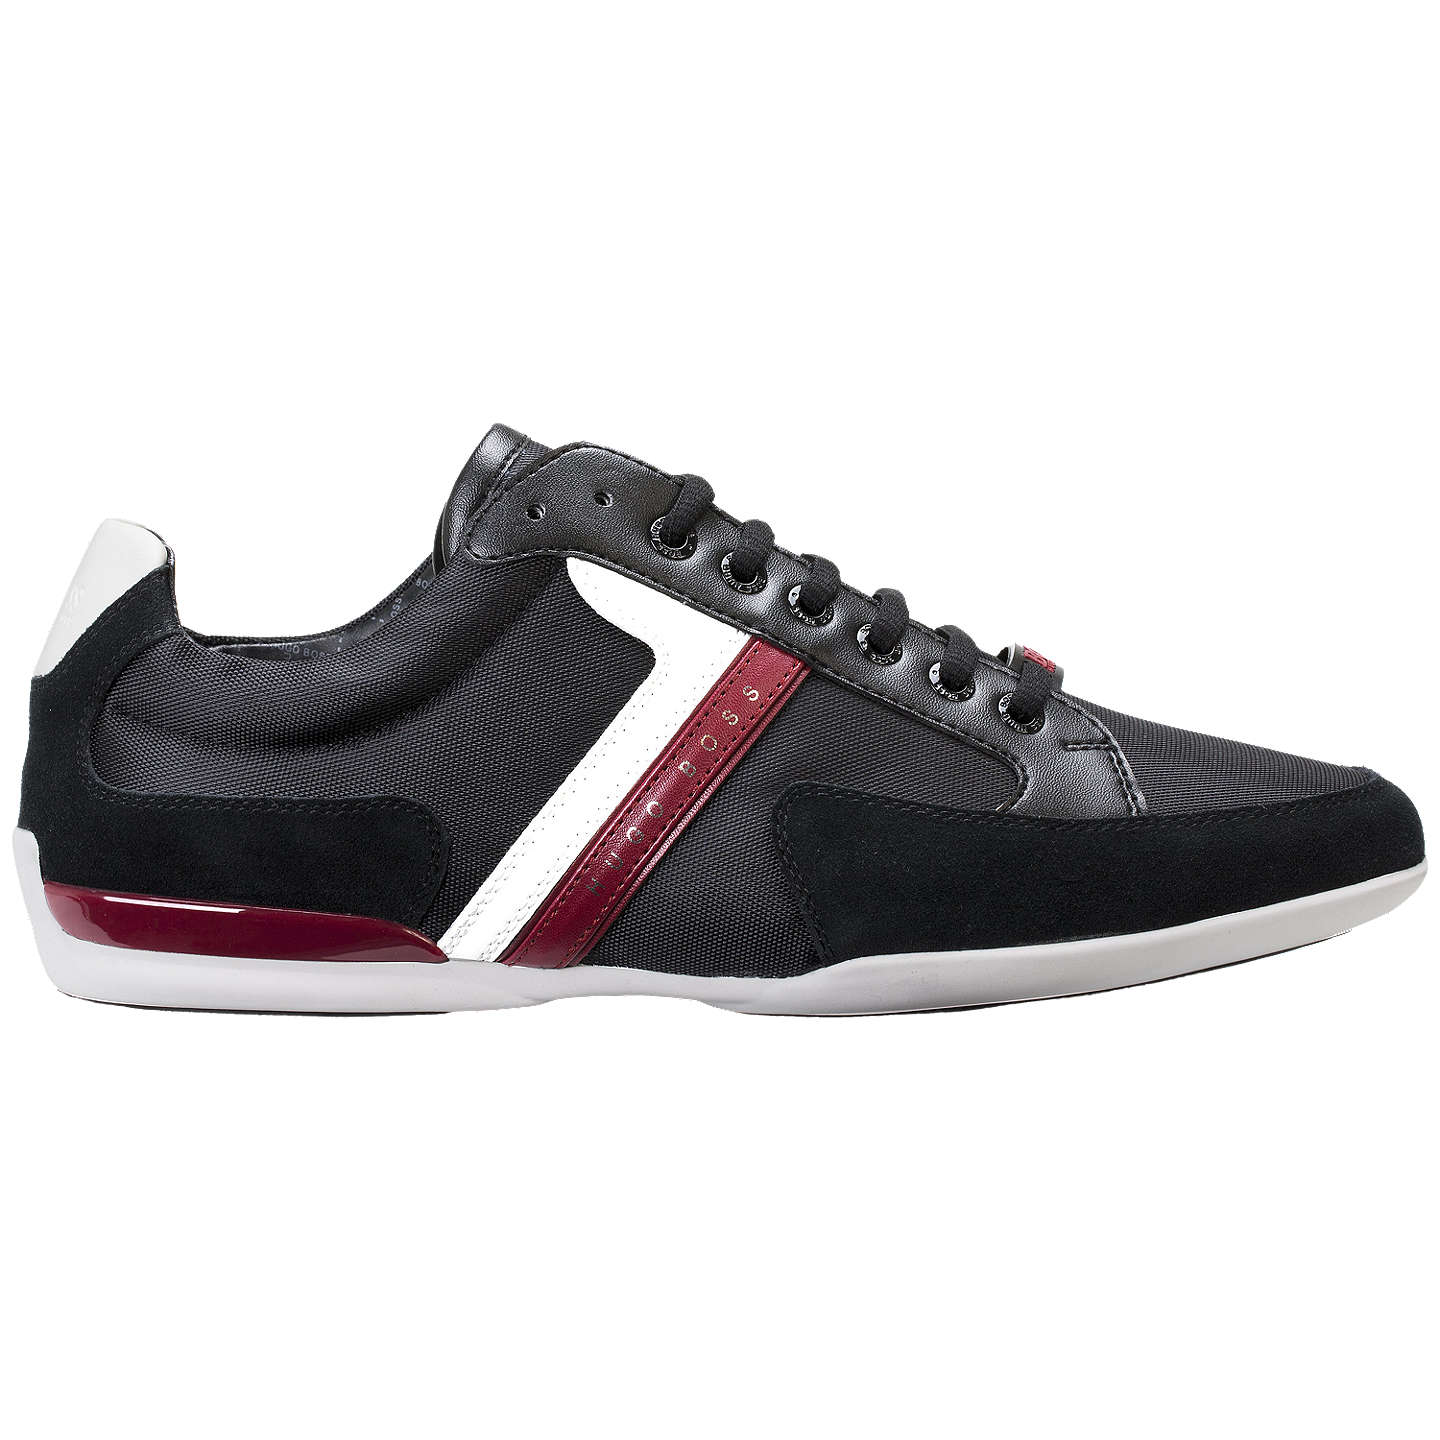 BuyHUGO BOSS Spacit Trainers, Charcoal, 7 Online at johnlewis.com